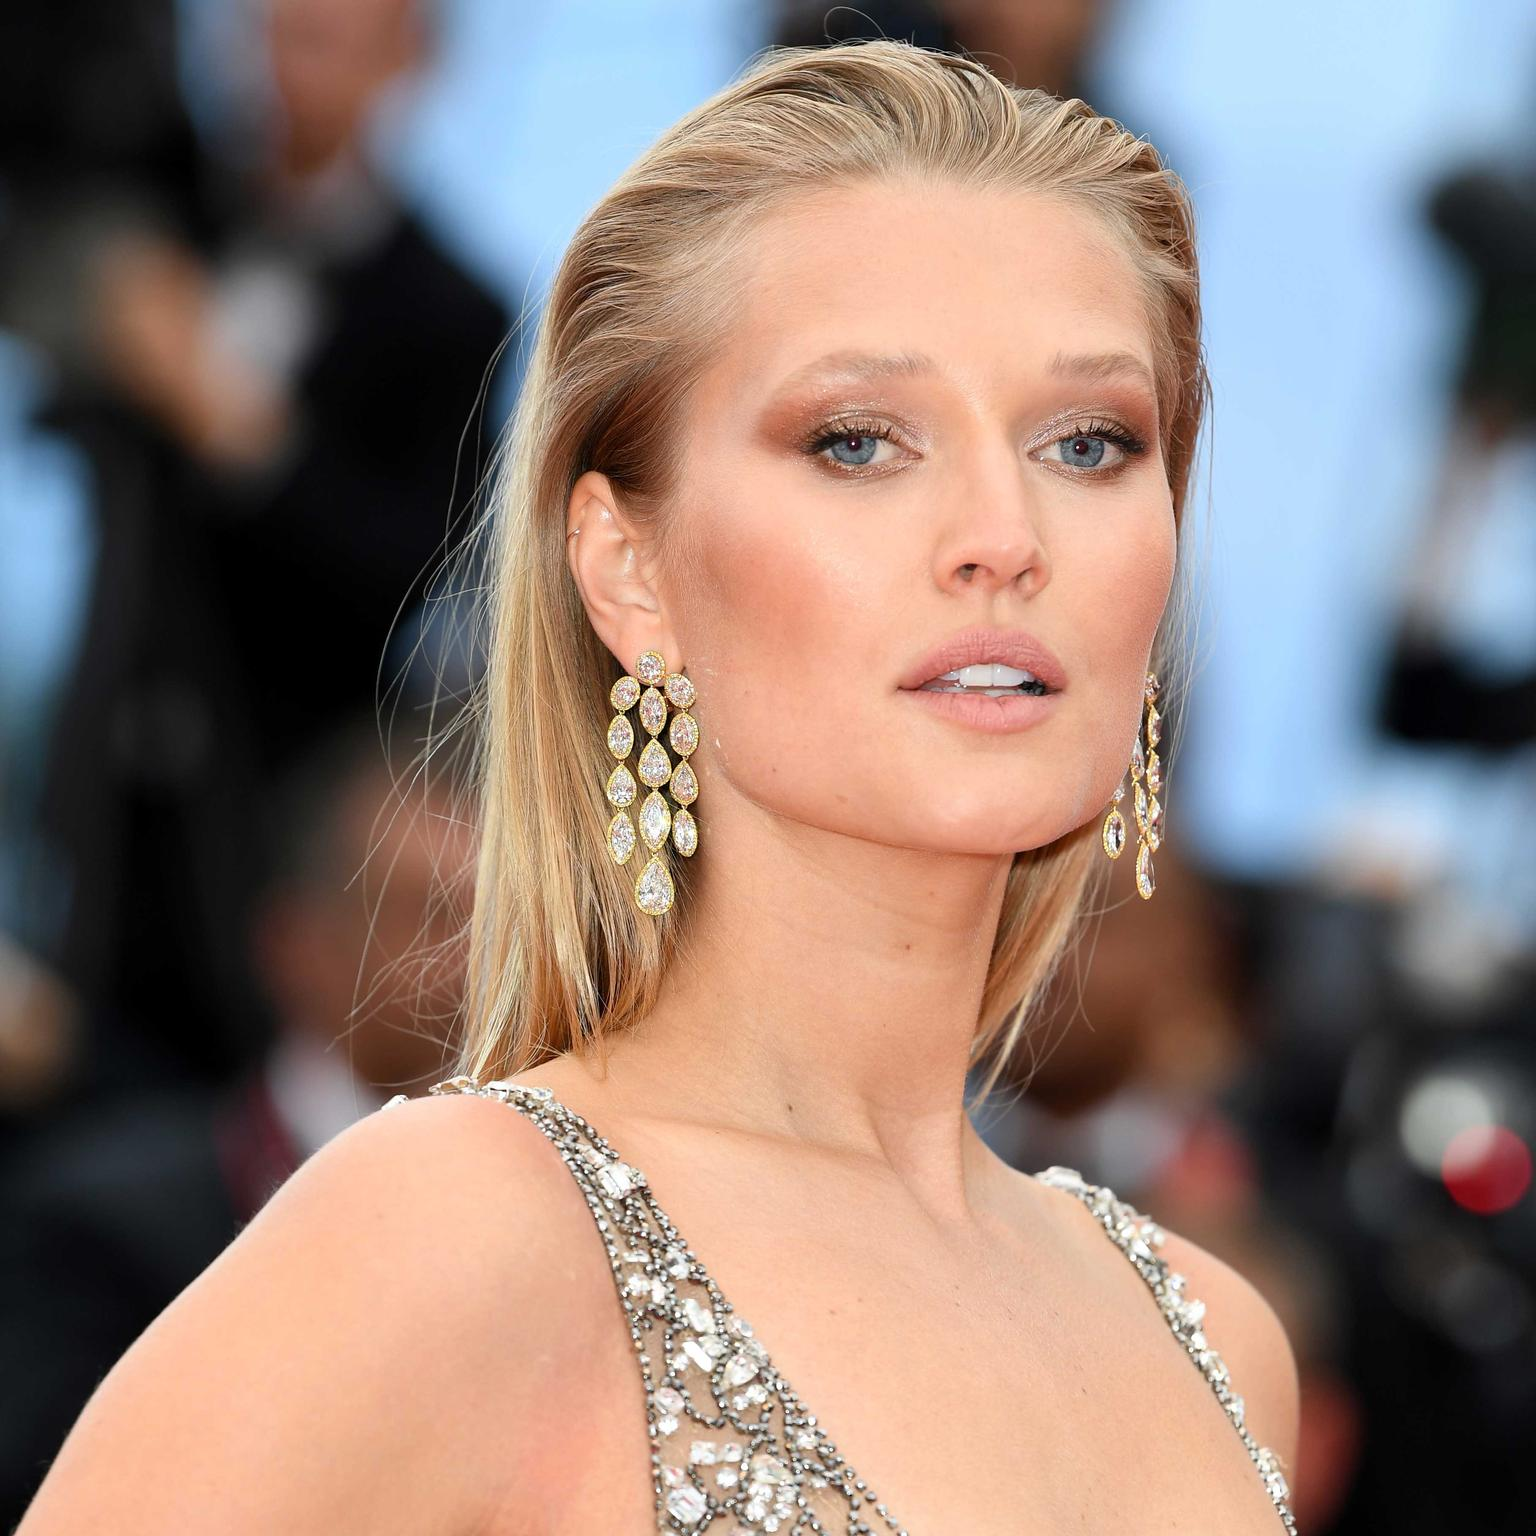 ICloud Antonia Toni Garrn nudes (54 foto and video), Tits, Bikini, Boobs, cleavage 2019